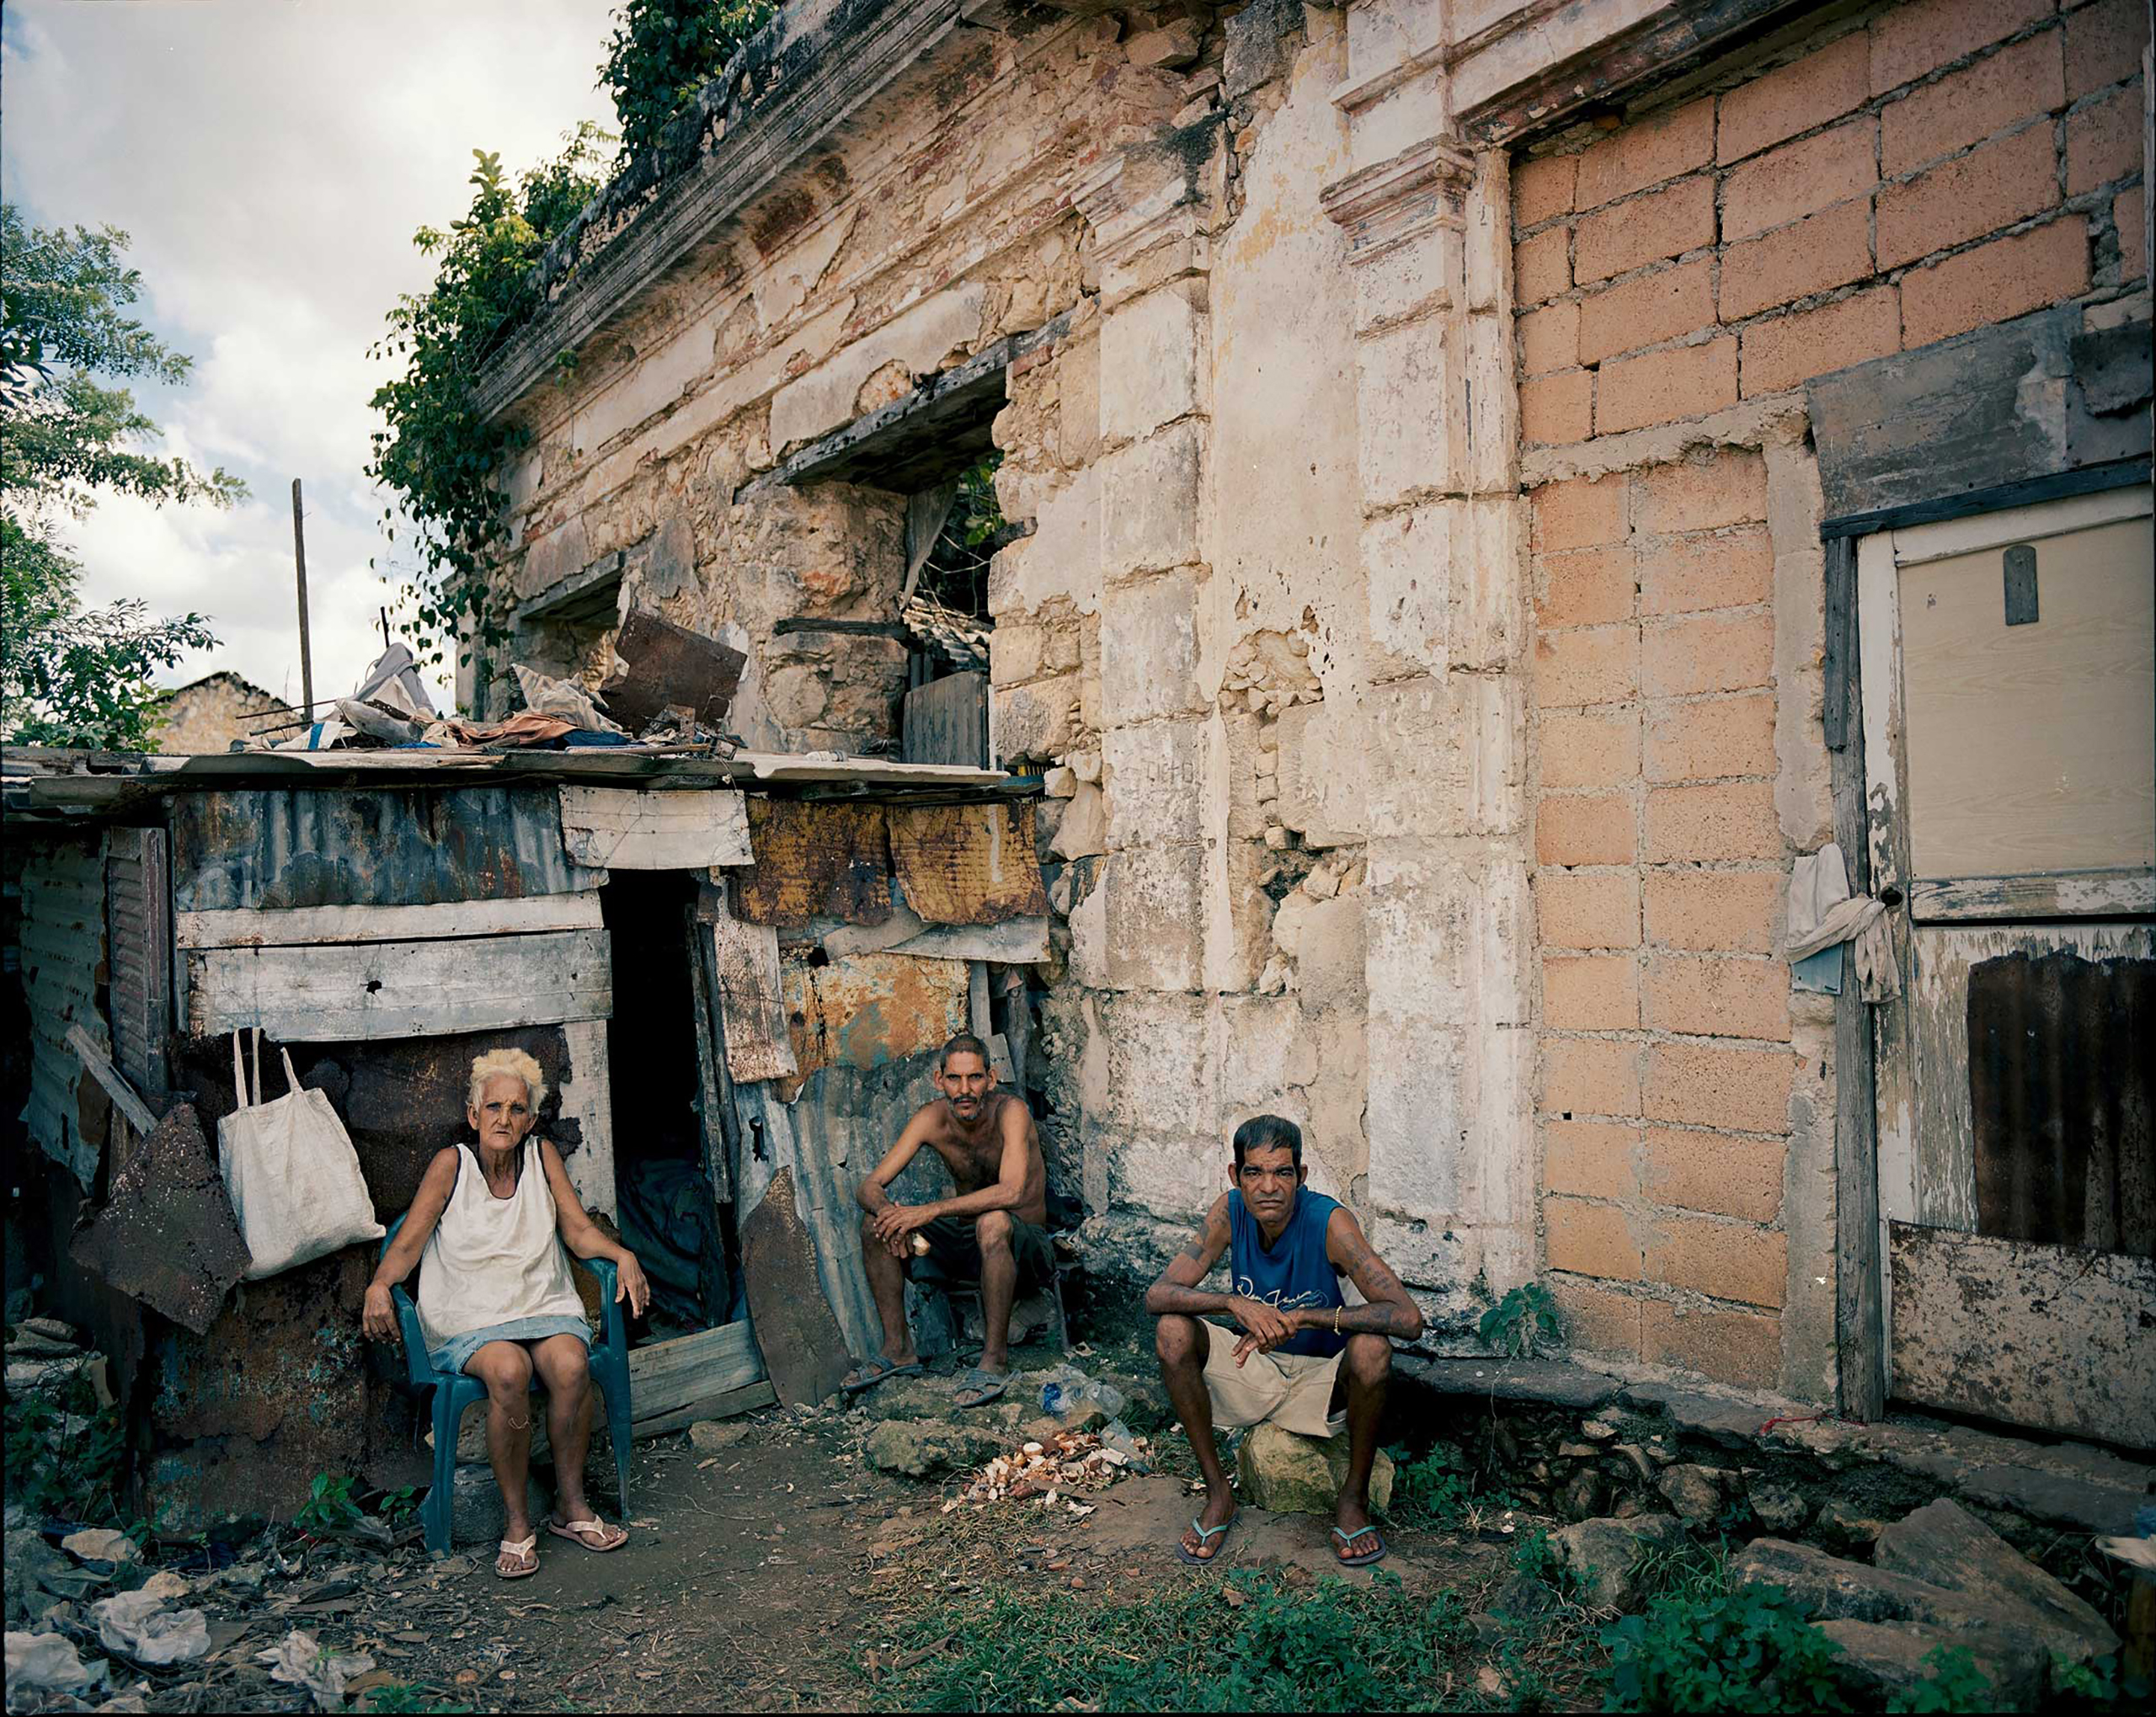 A family, fearing their roof might collapse, built a shack next to their former house near Havana.